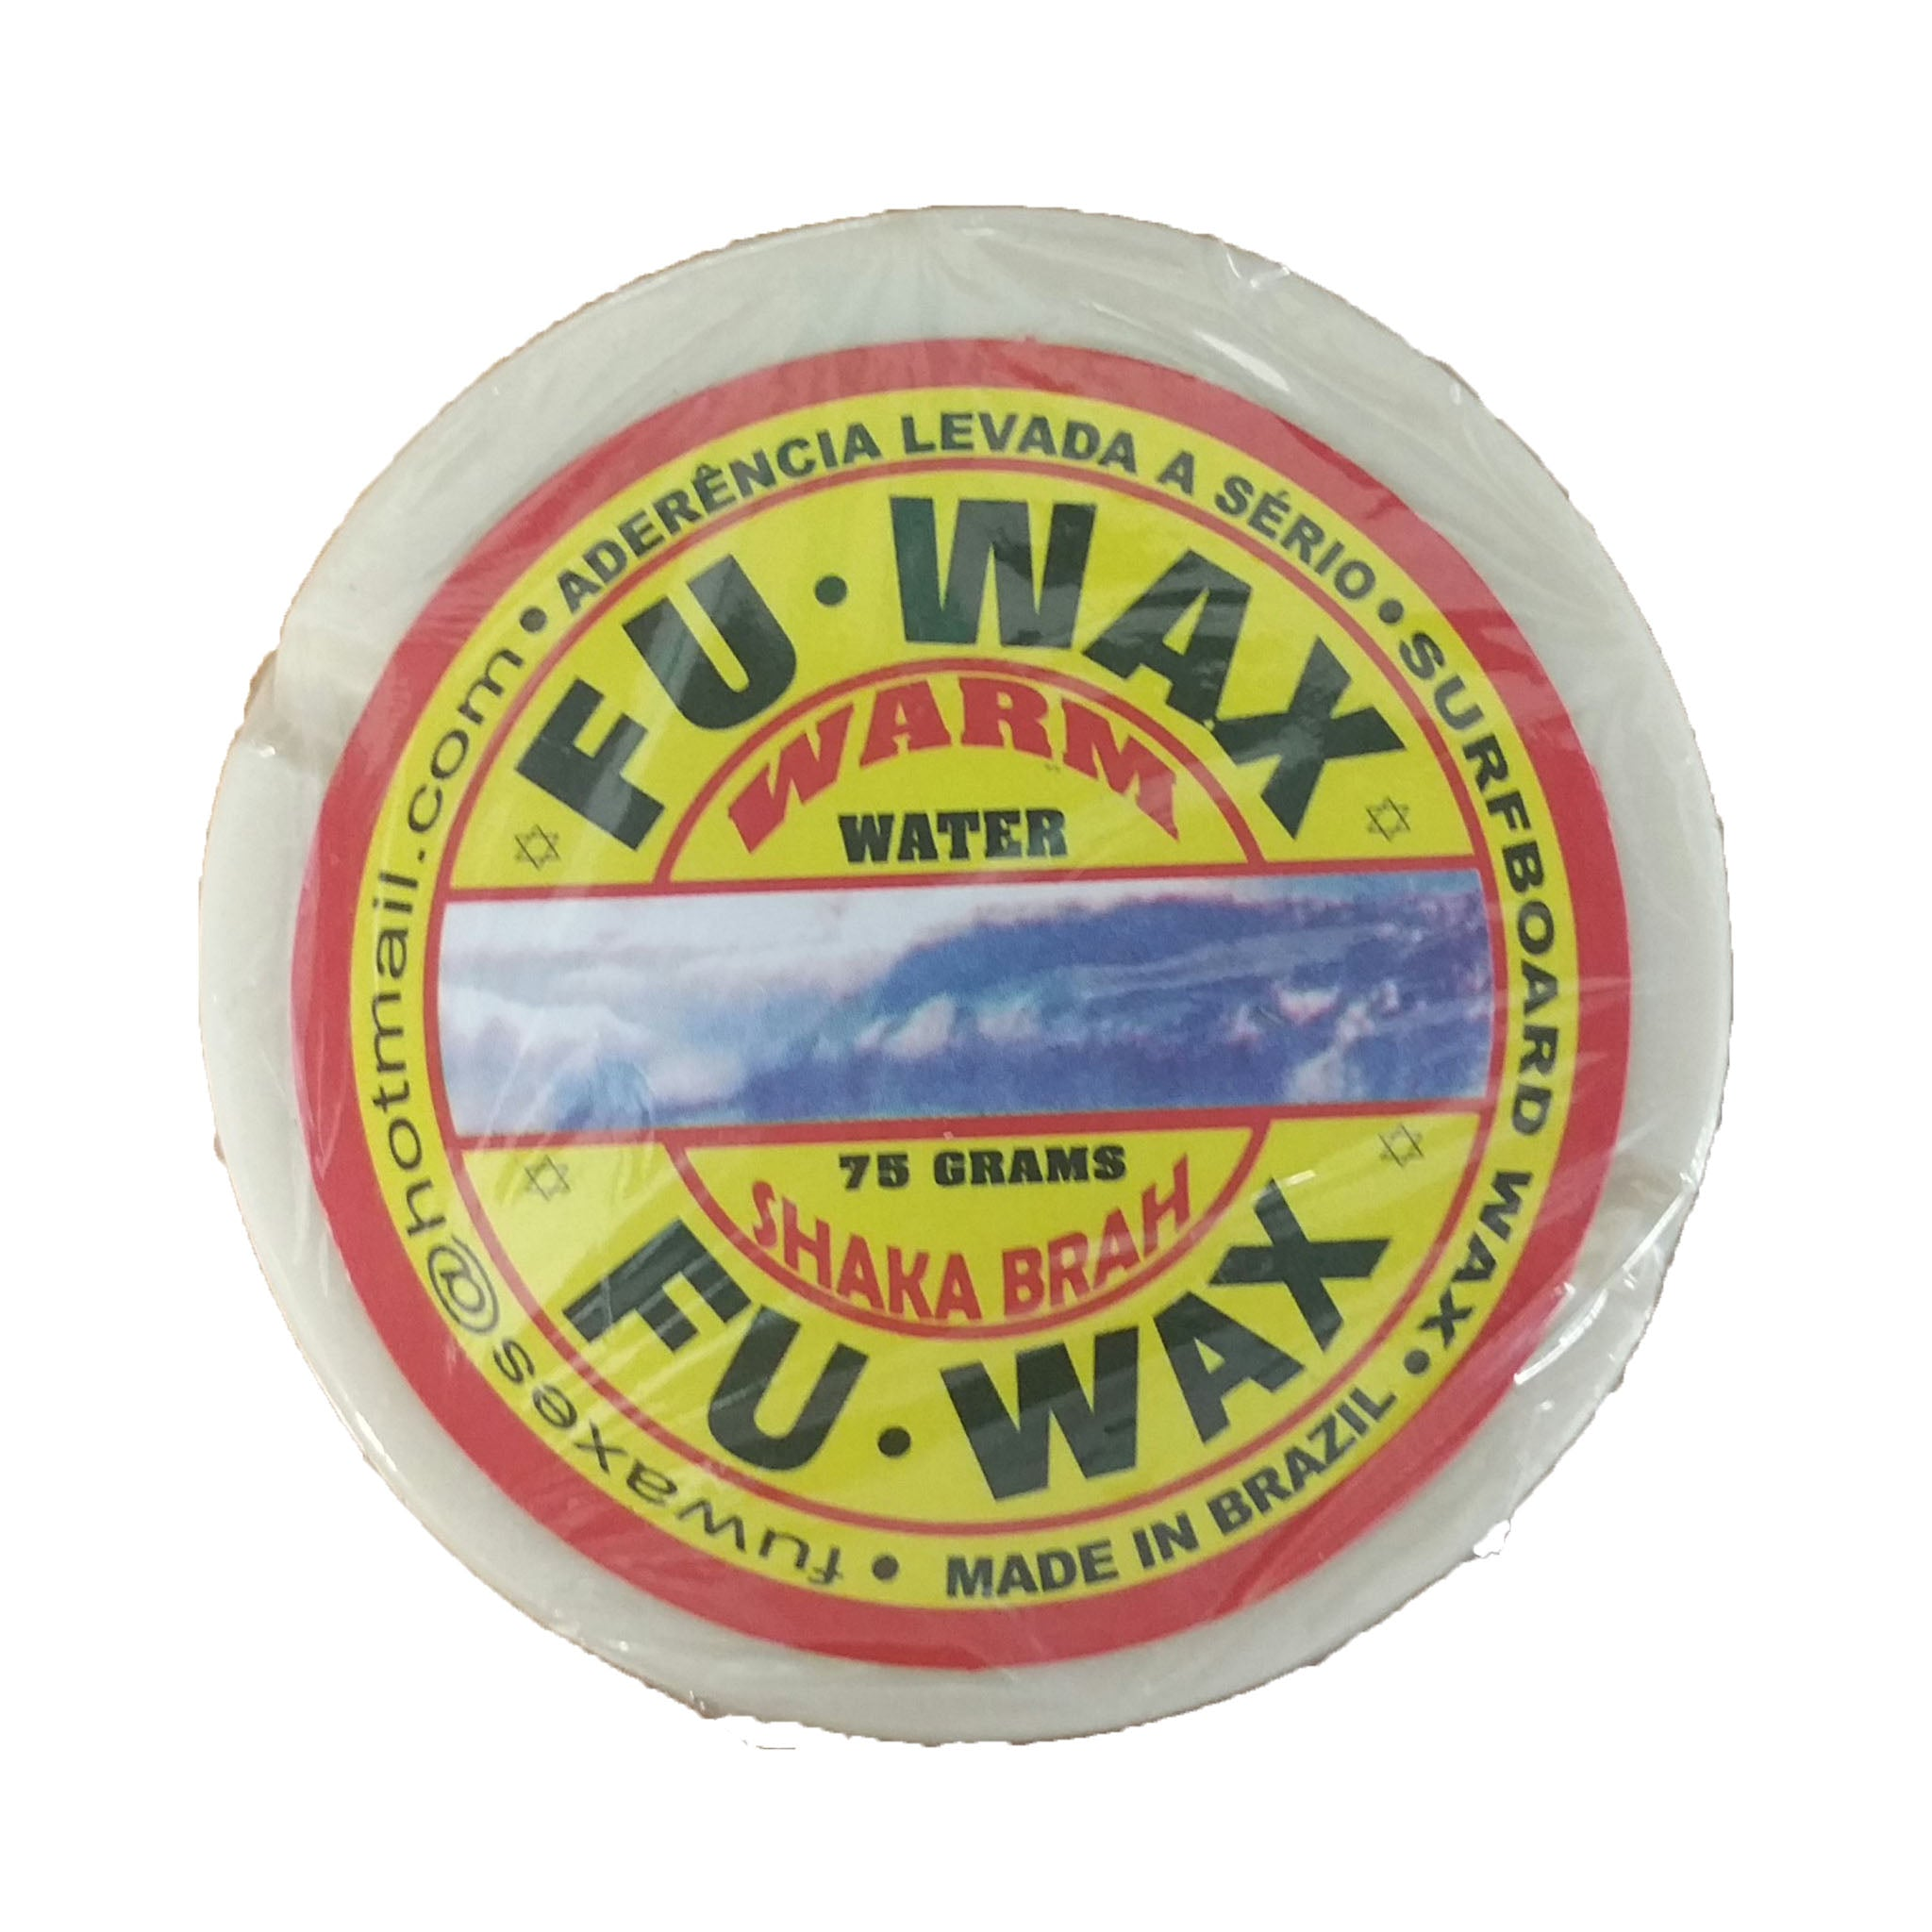 FU Wax Warm